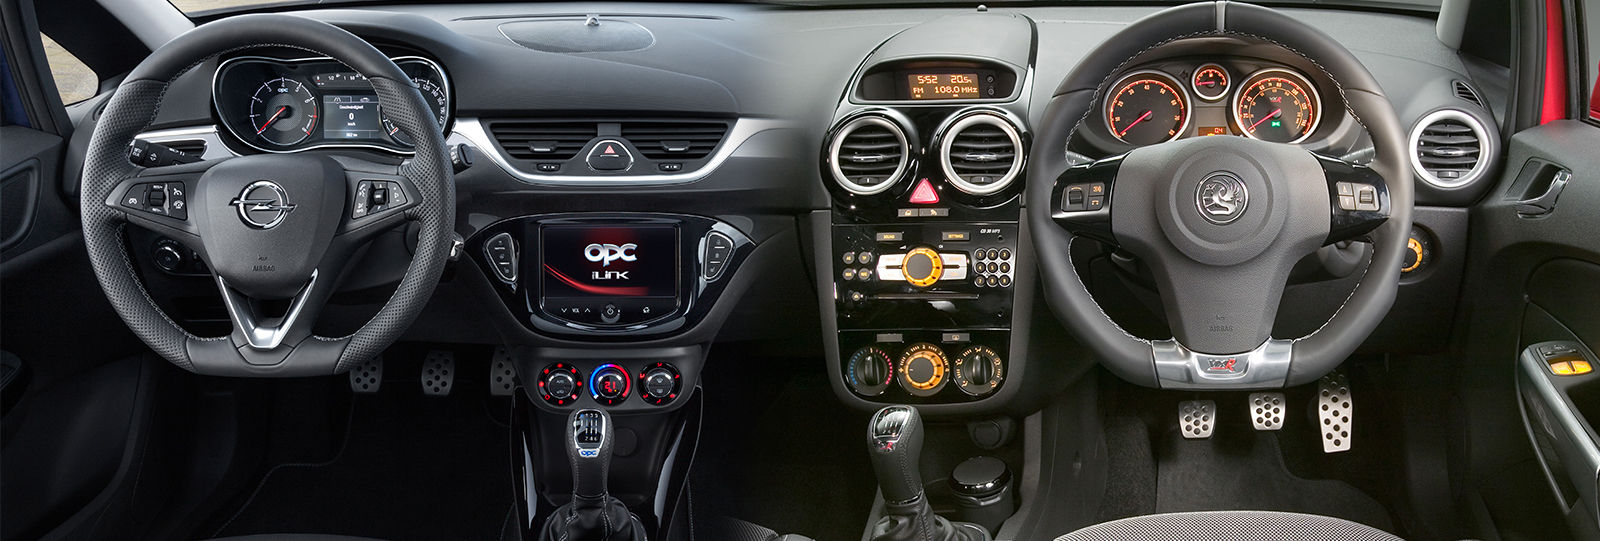 New 2015 vauxhall corsa opel opc new model vs old for Opel corsa e interieur